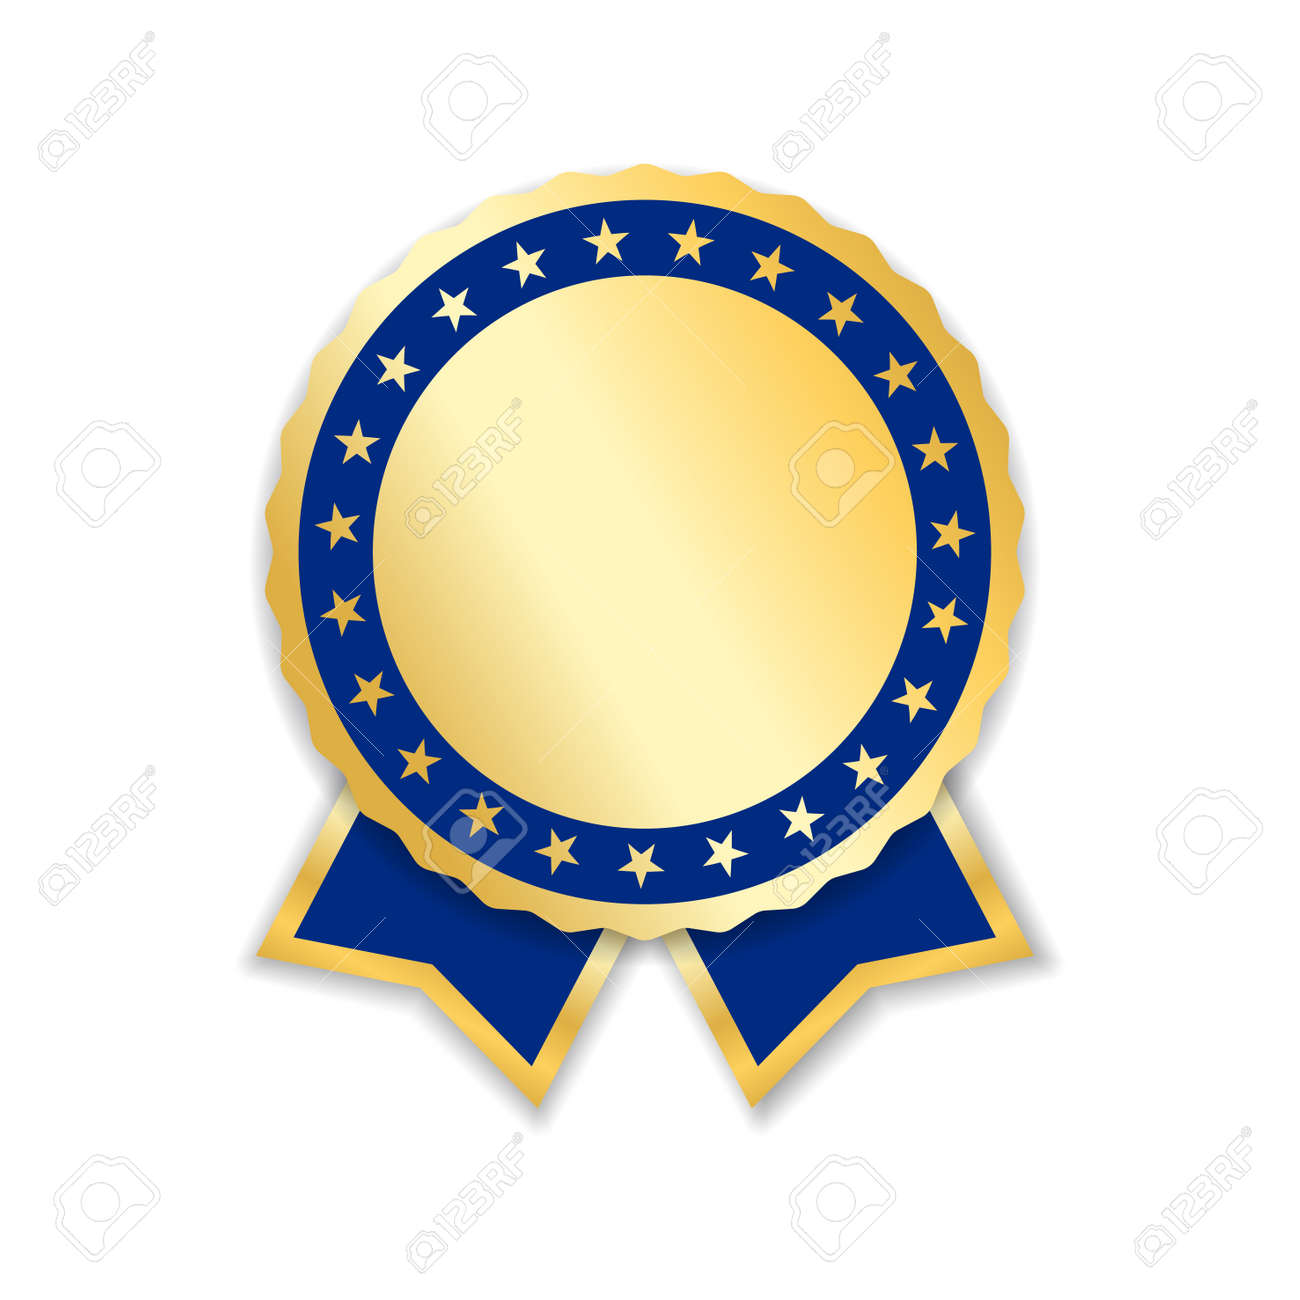 Award ribbon isolated. Gold blue design medal, label, badge, certificate. Symbol best sale, price, quality, guarantee or success, achievement. Golden ribbon award decoration Vector illustration - 91882557